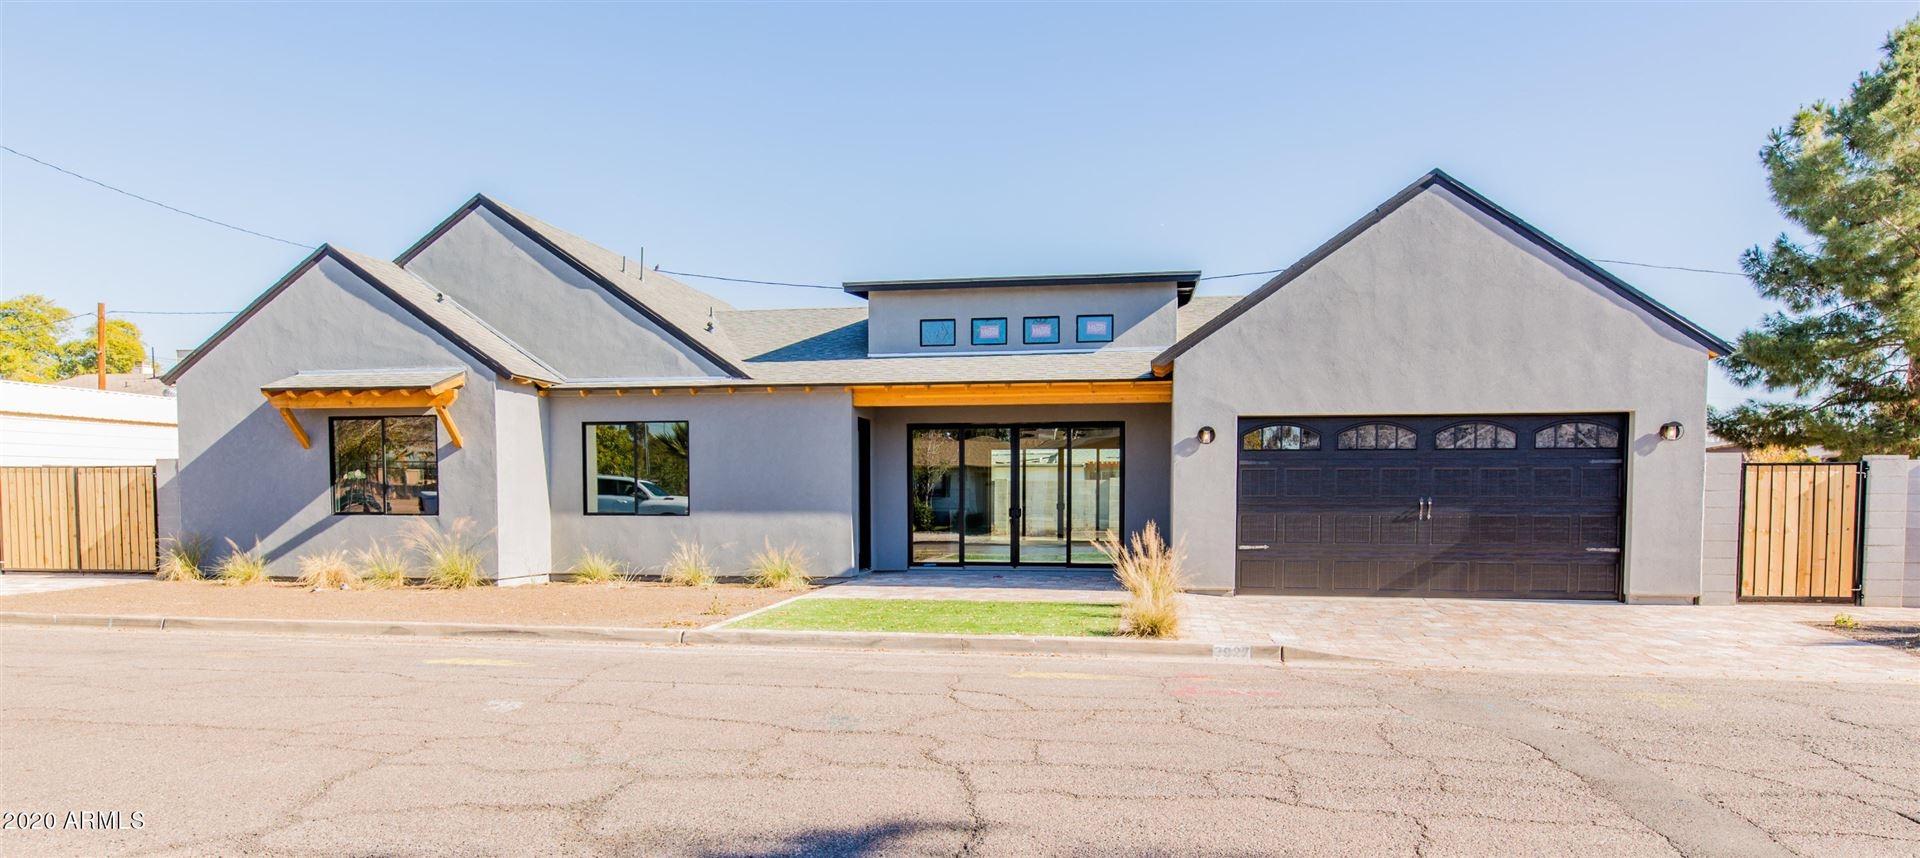 3927 N 13TH Place, Phoenix, AZ 85014 - MLS#: 6124495